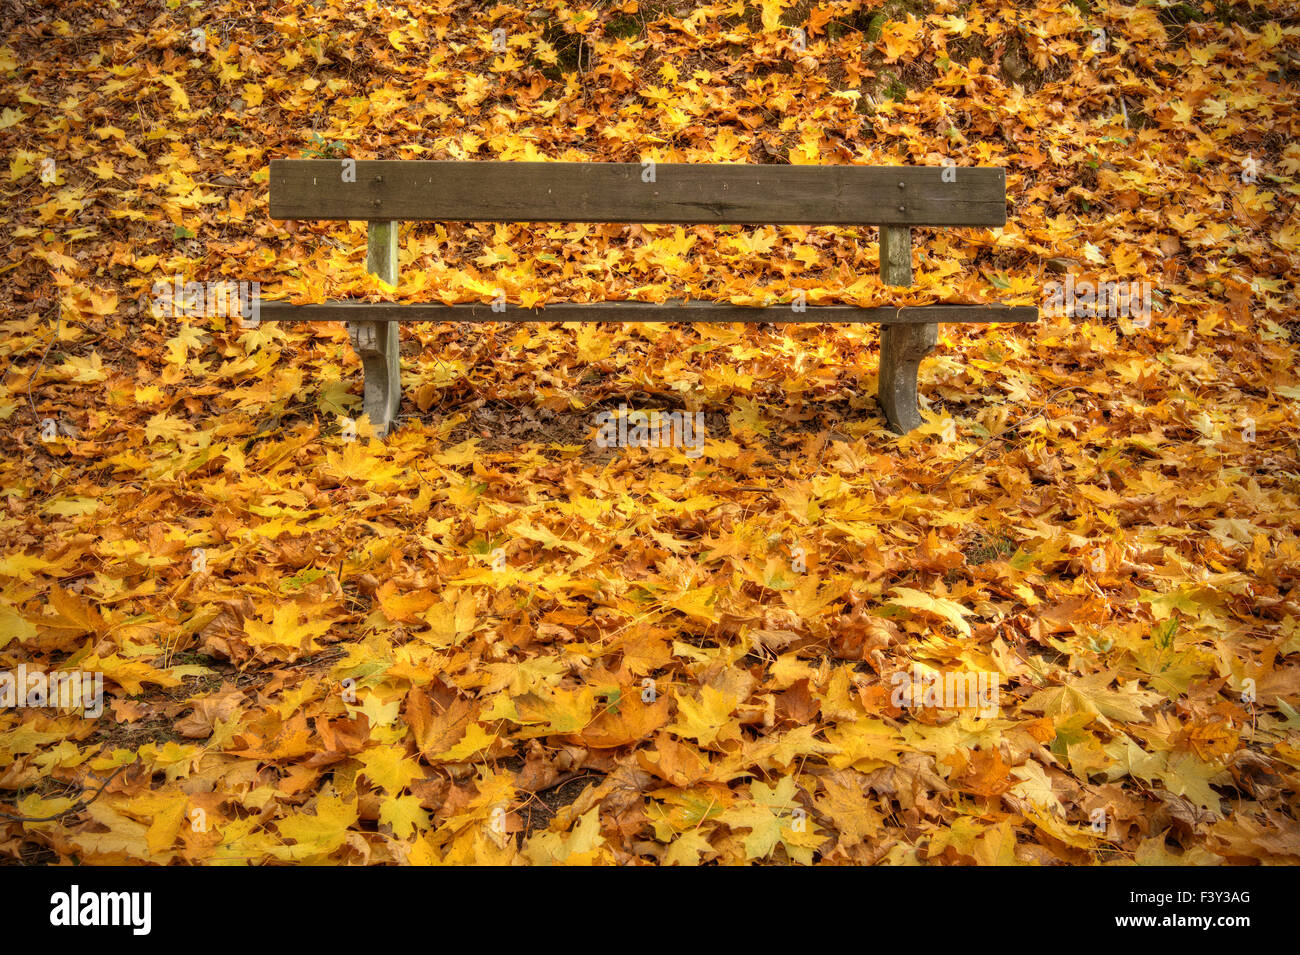 Autumn bench in park - Stock Image